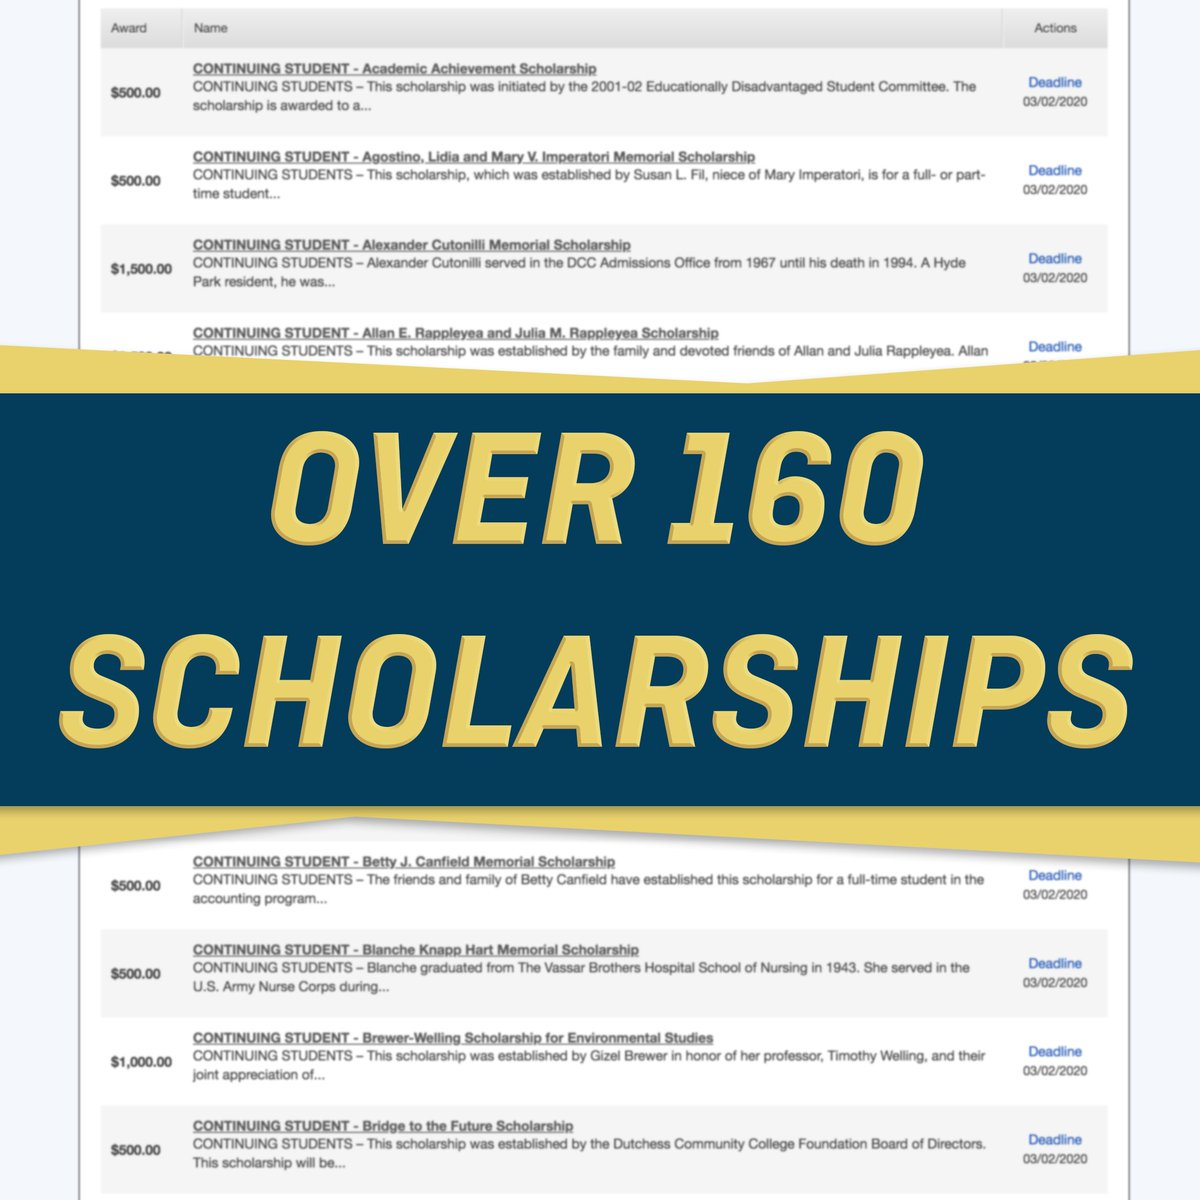 Just a reminder that there are over 160 scholarships available with a March 2 deadline! Visit http://www.sunydutchess.edu/scholarships/ to learn more and see what you might be eligible for.